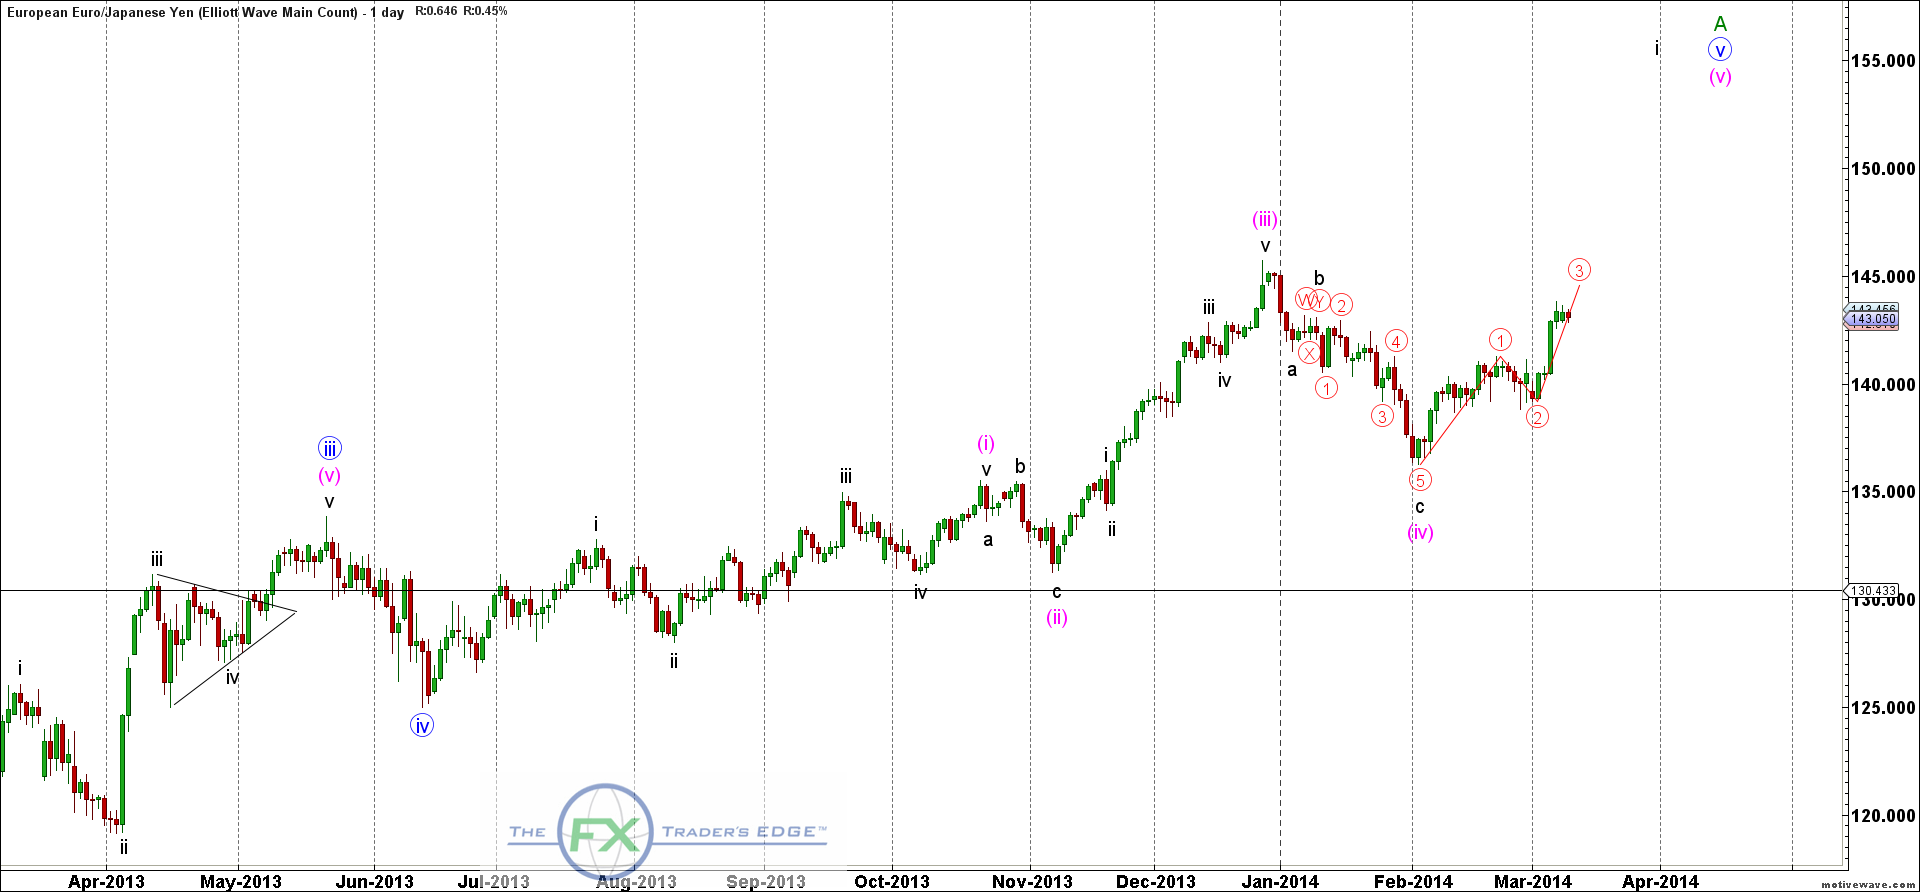 EURJPY-Elliott-Wave-Main-Count-Mar-11-0820-AM-1-day